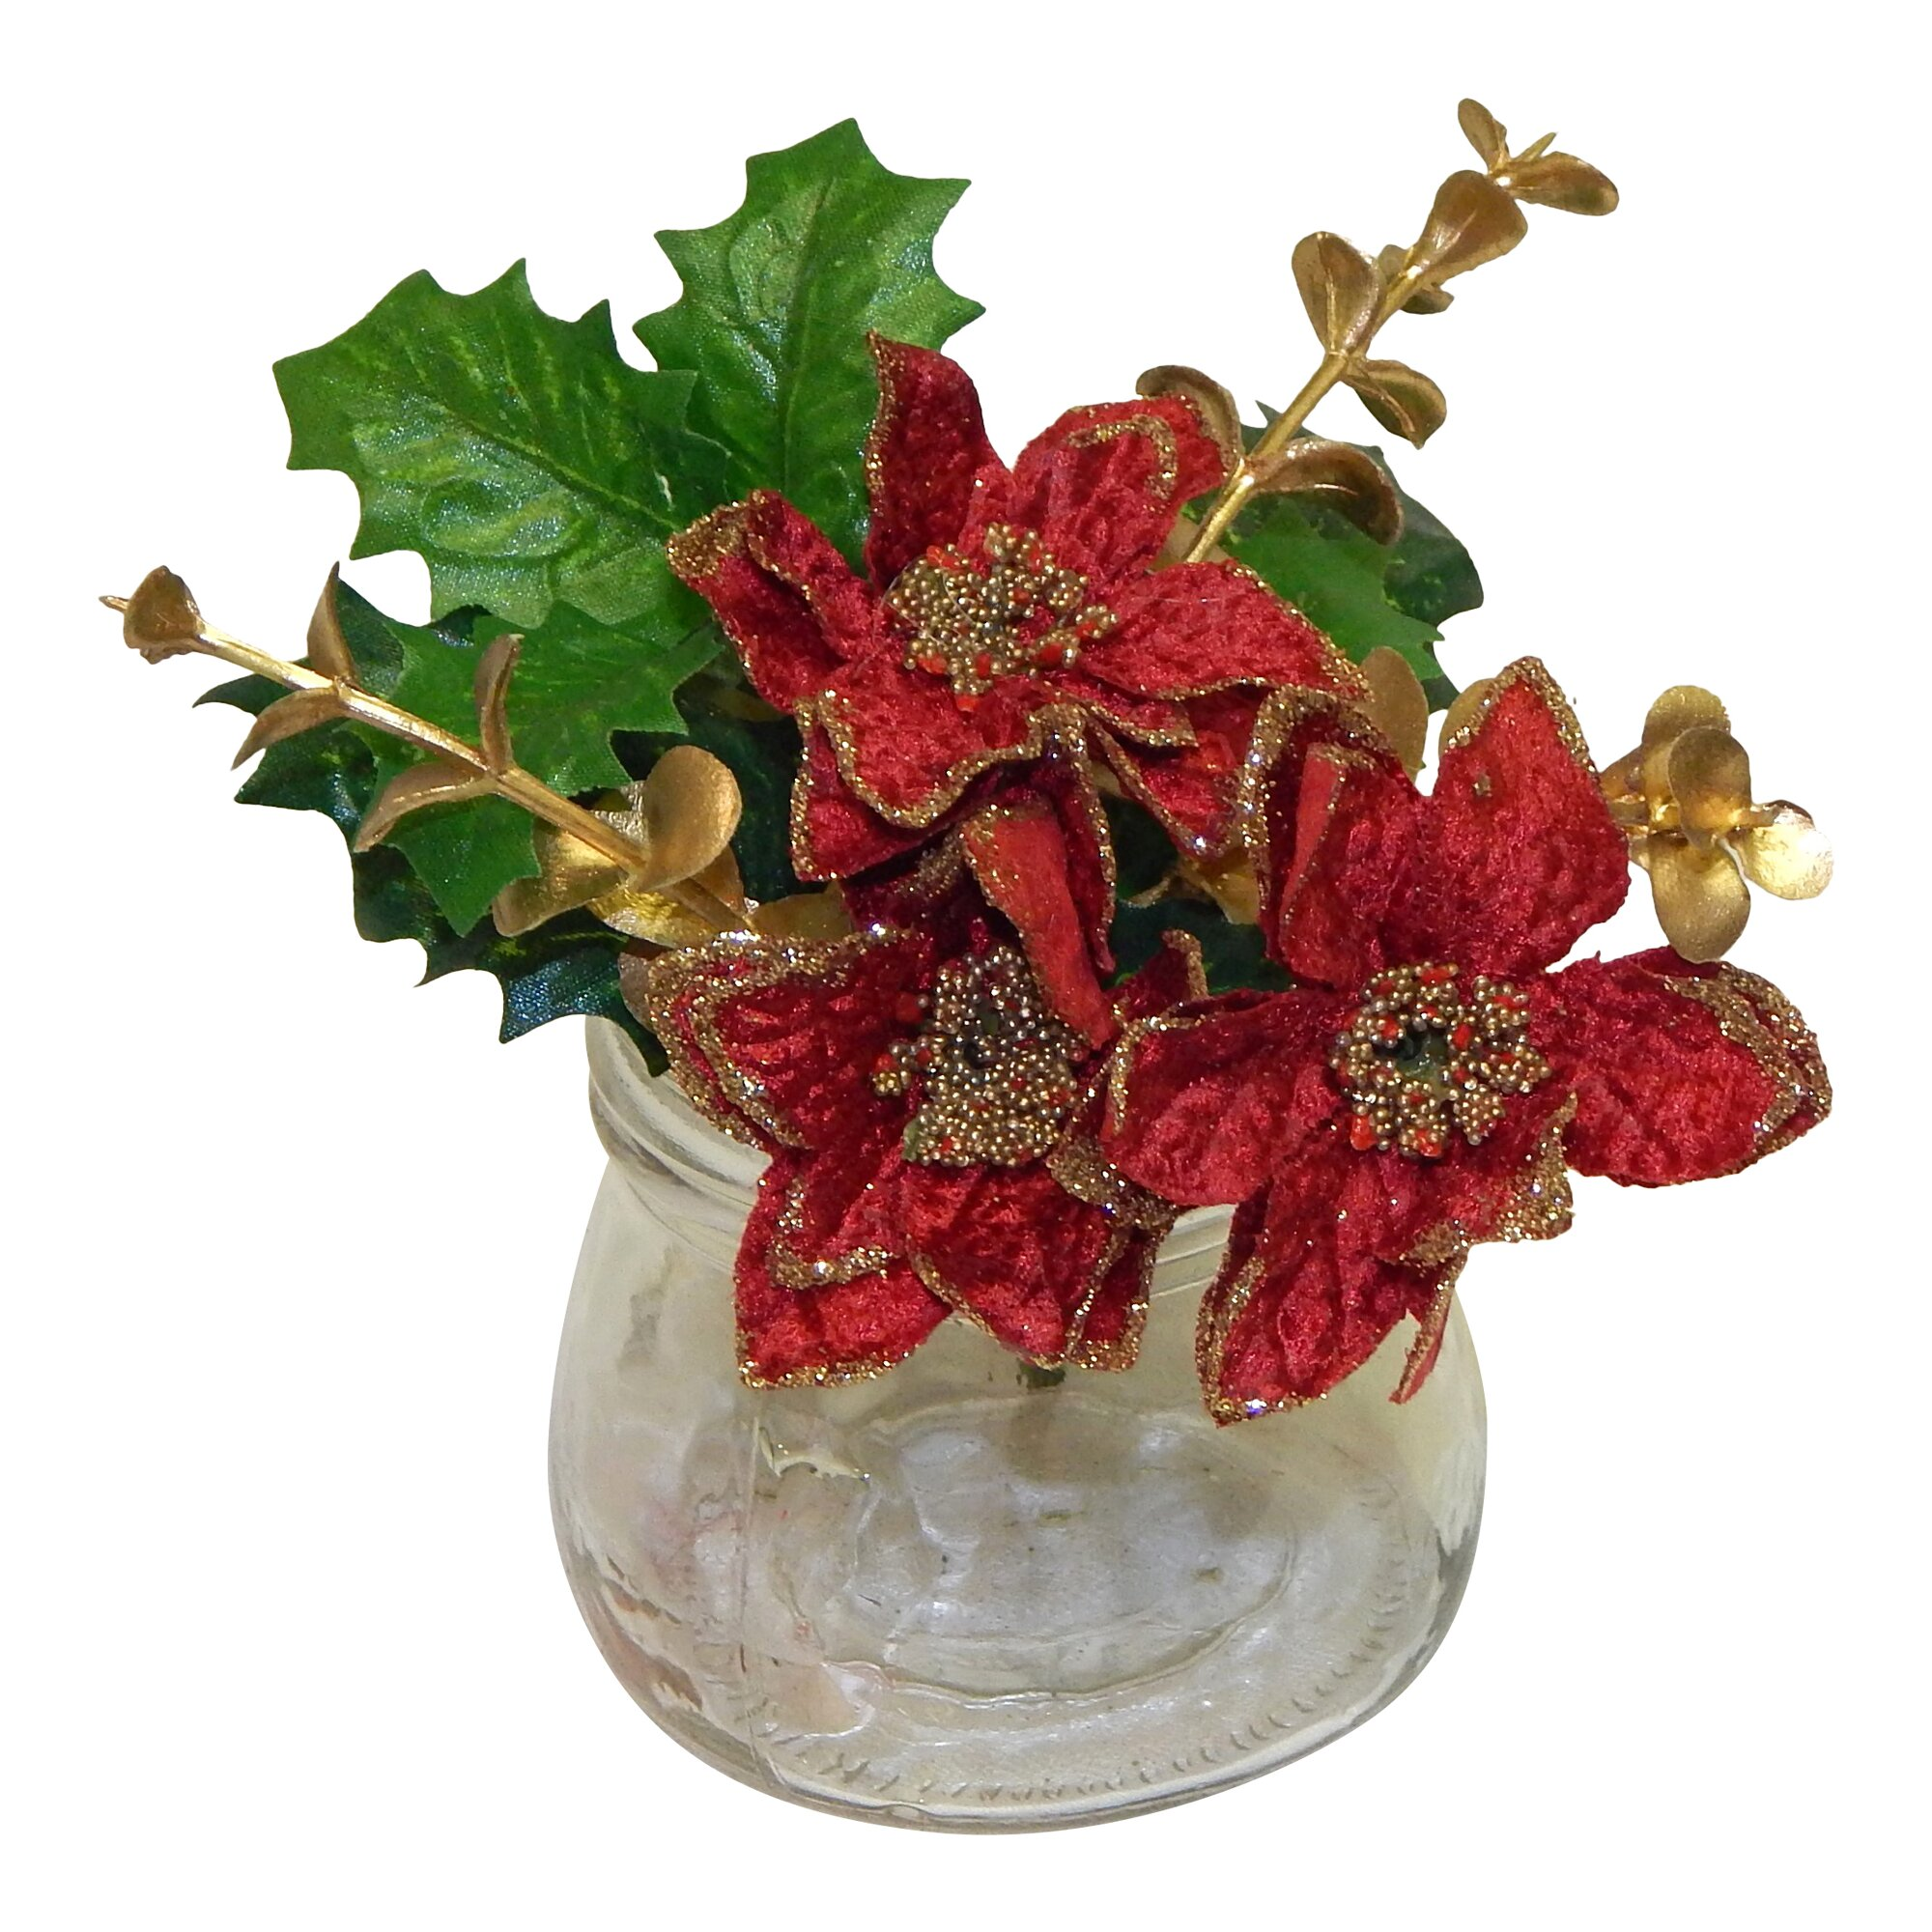 Poinsettia arrangement wayfair for Poinsettia arrangements